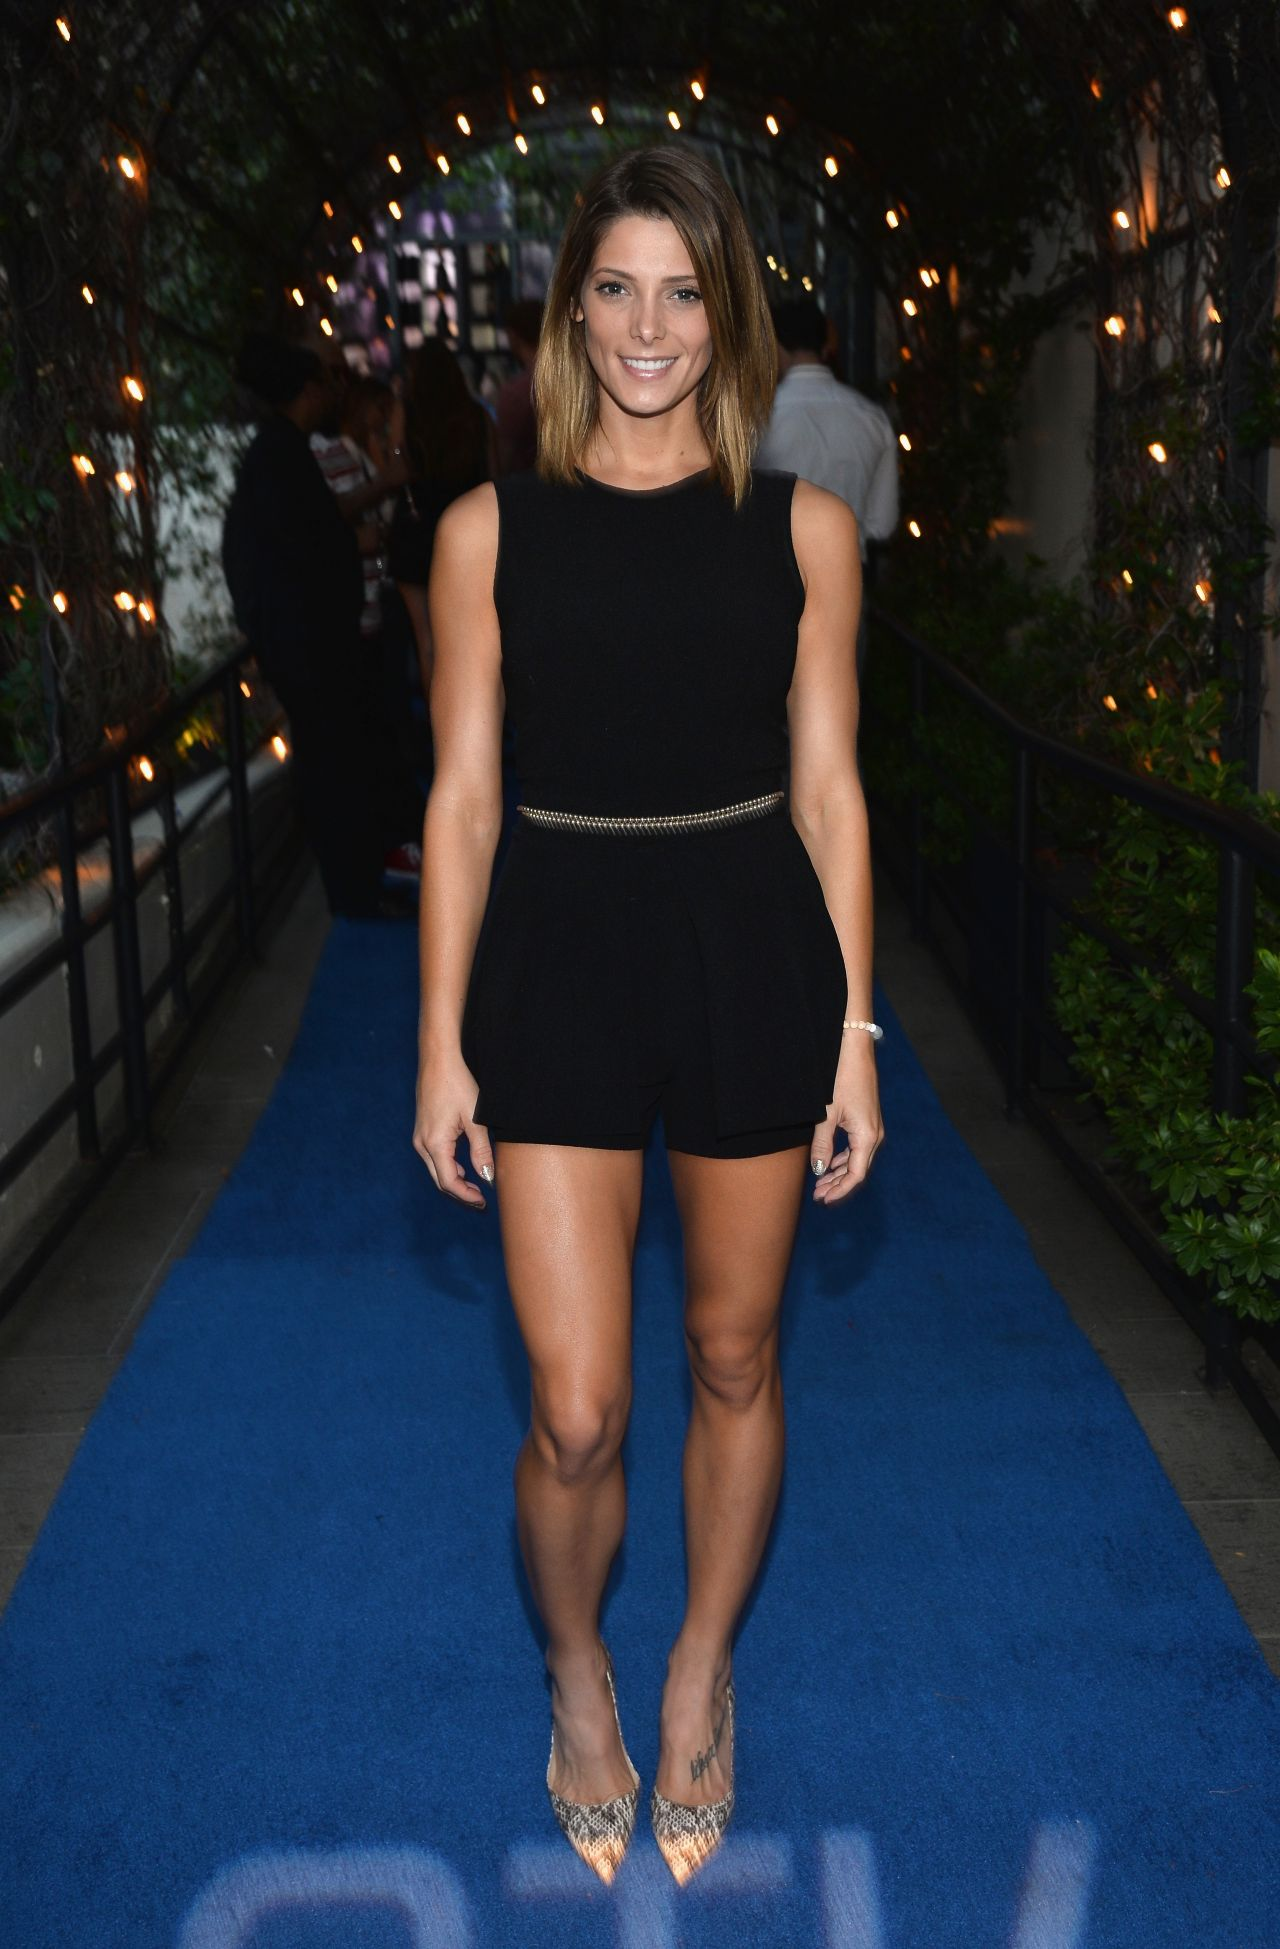 Ashley Greene Shows Legs At The Stk Los Angeles 2014 Party